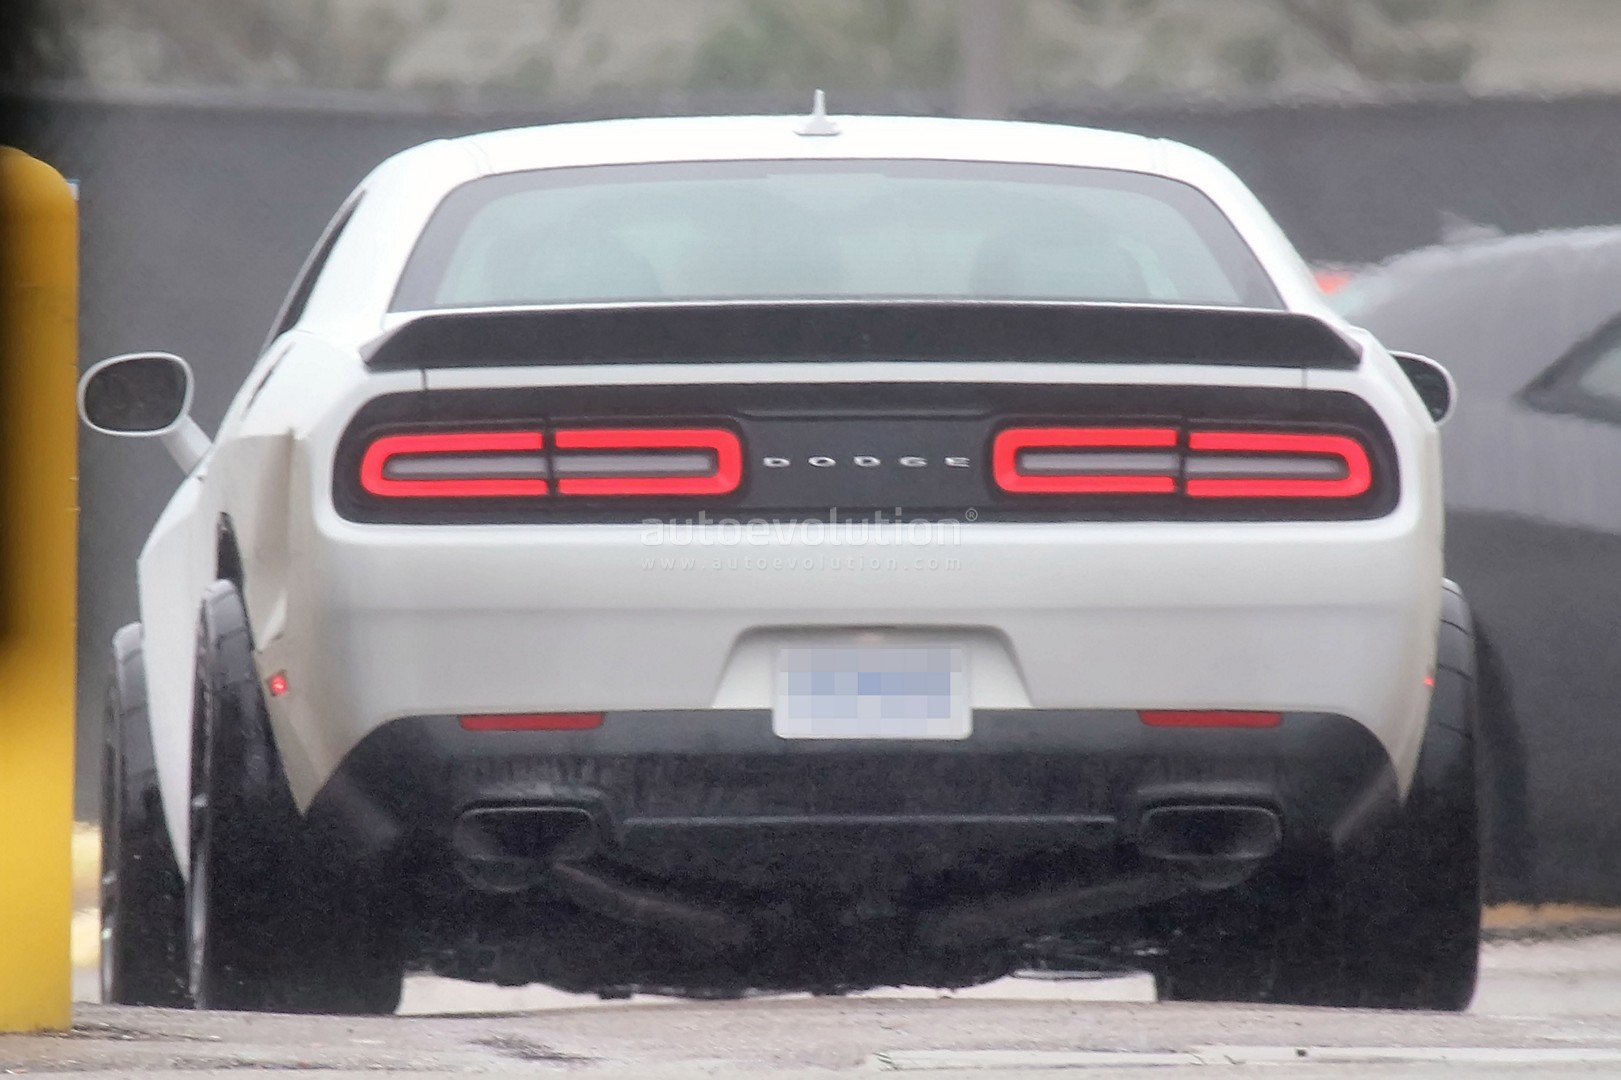 2017 dodge challenger gt goes official with awd and v6 engine thanks to the epa autoevolution. Black Bedroom Furniture Sets. Home Design Ideas